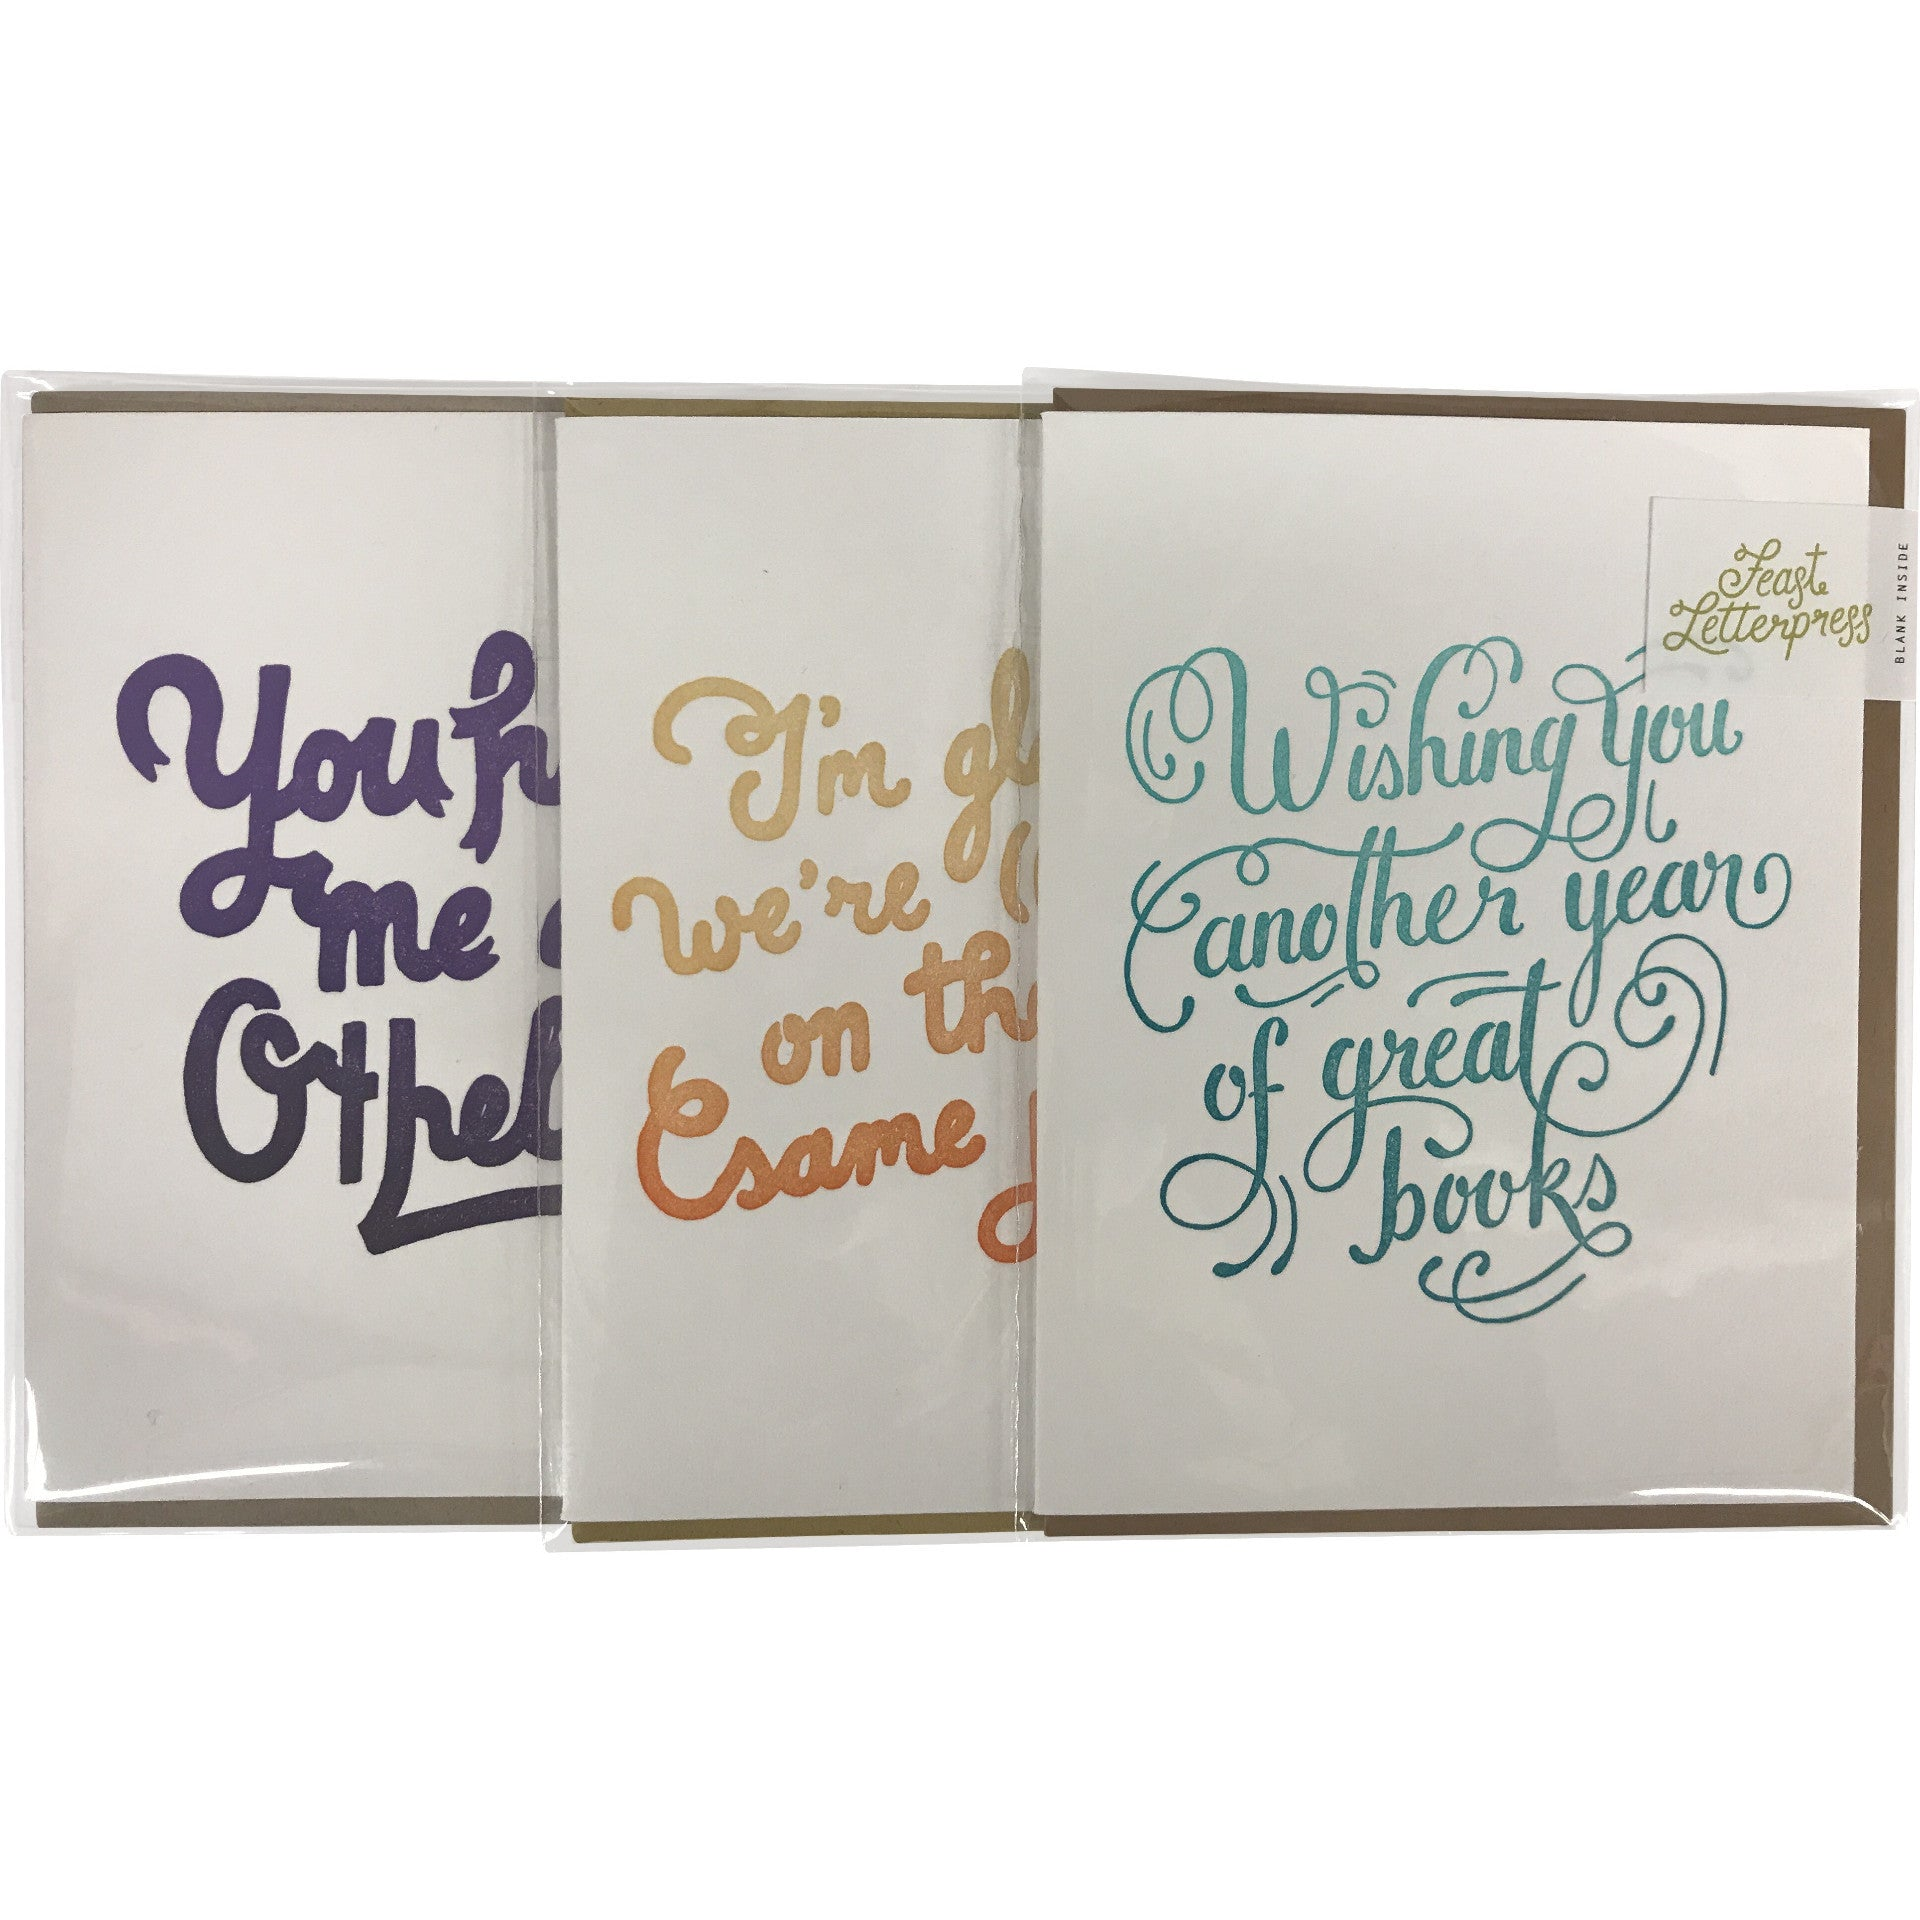 Greeting Card Wishing You Another Year Of Great Books